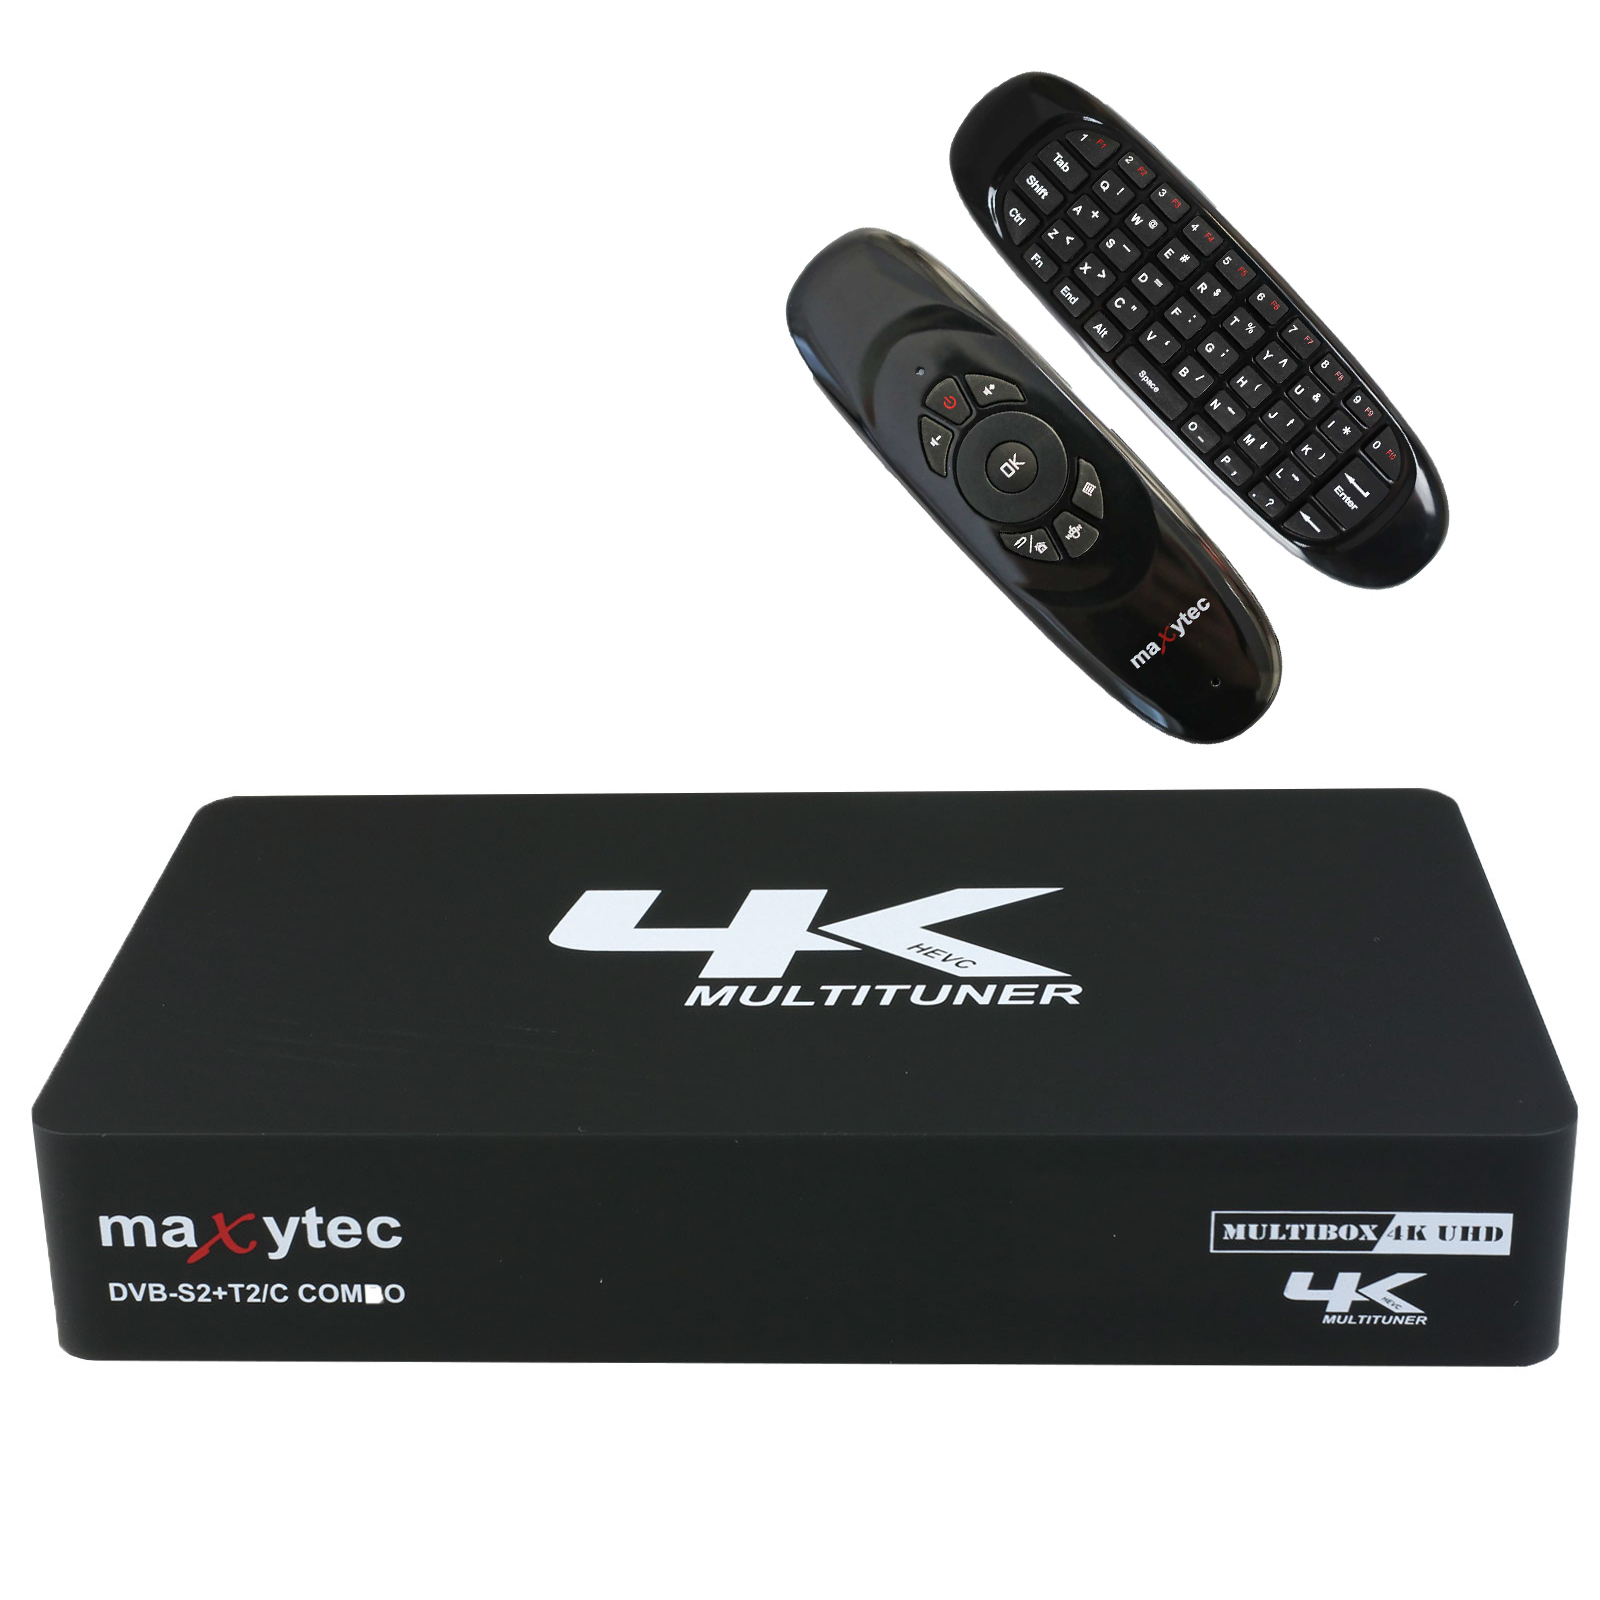 Maxytec Multibox 4K UHD 2160p E2 Linux + Android DVB-S2/T2/C Combo Receiver  + e40 Air Mouse